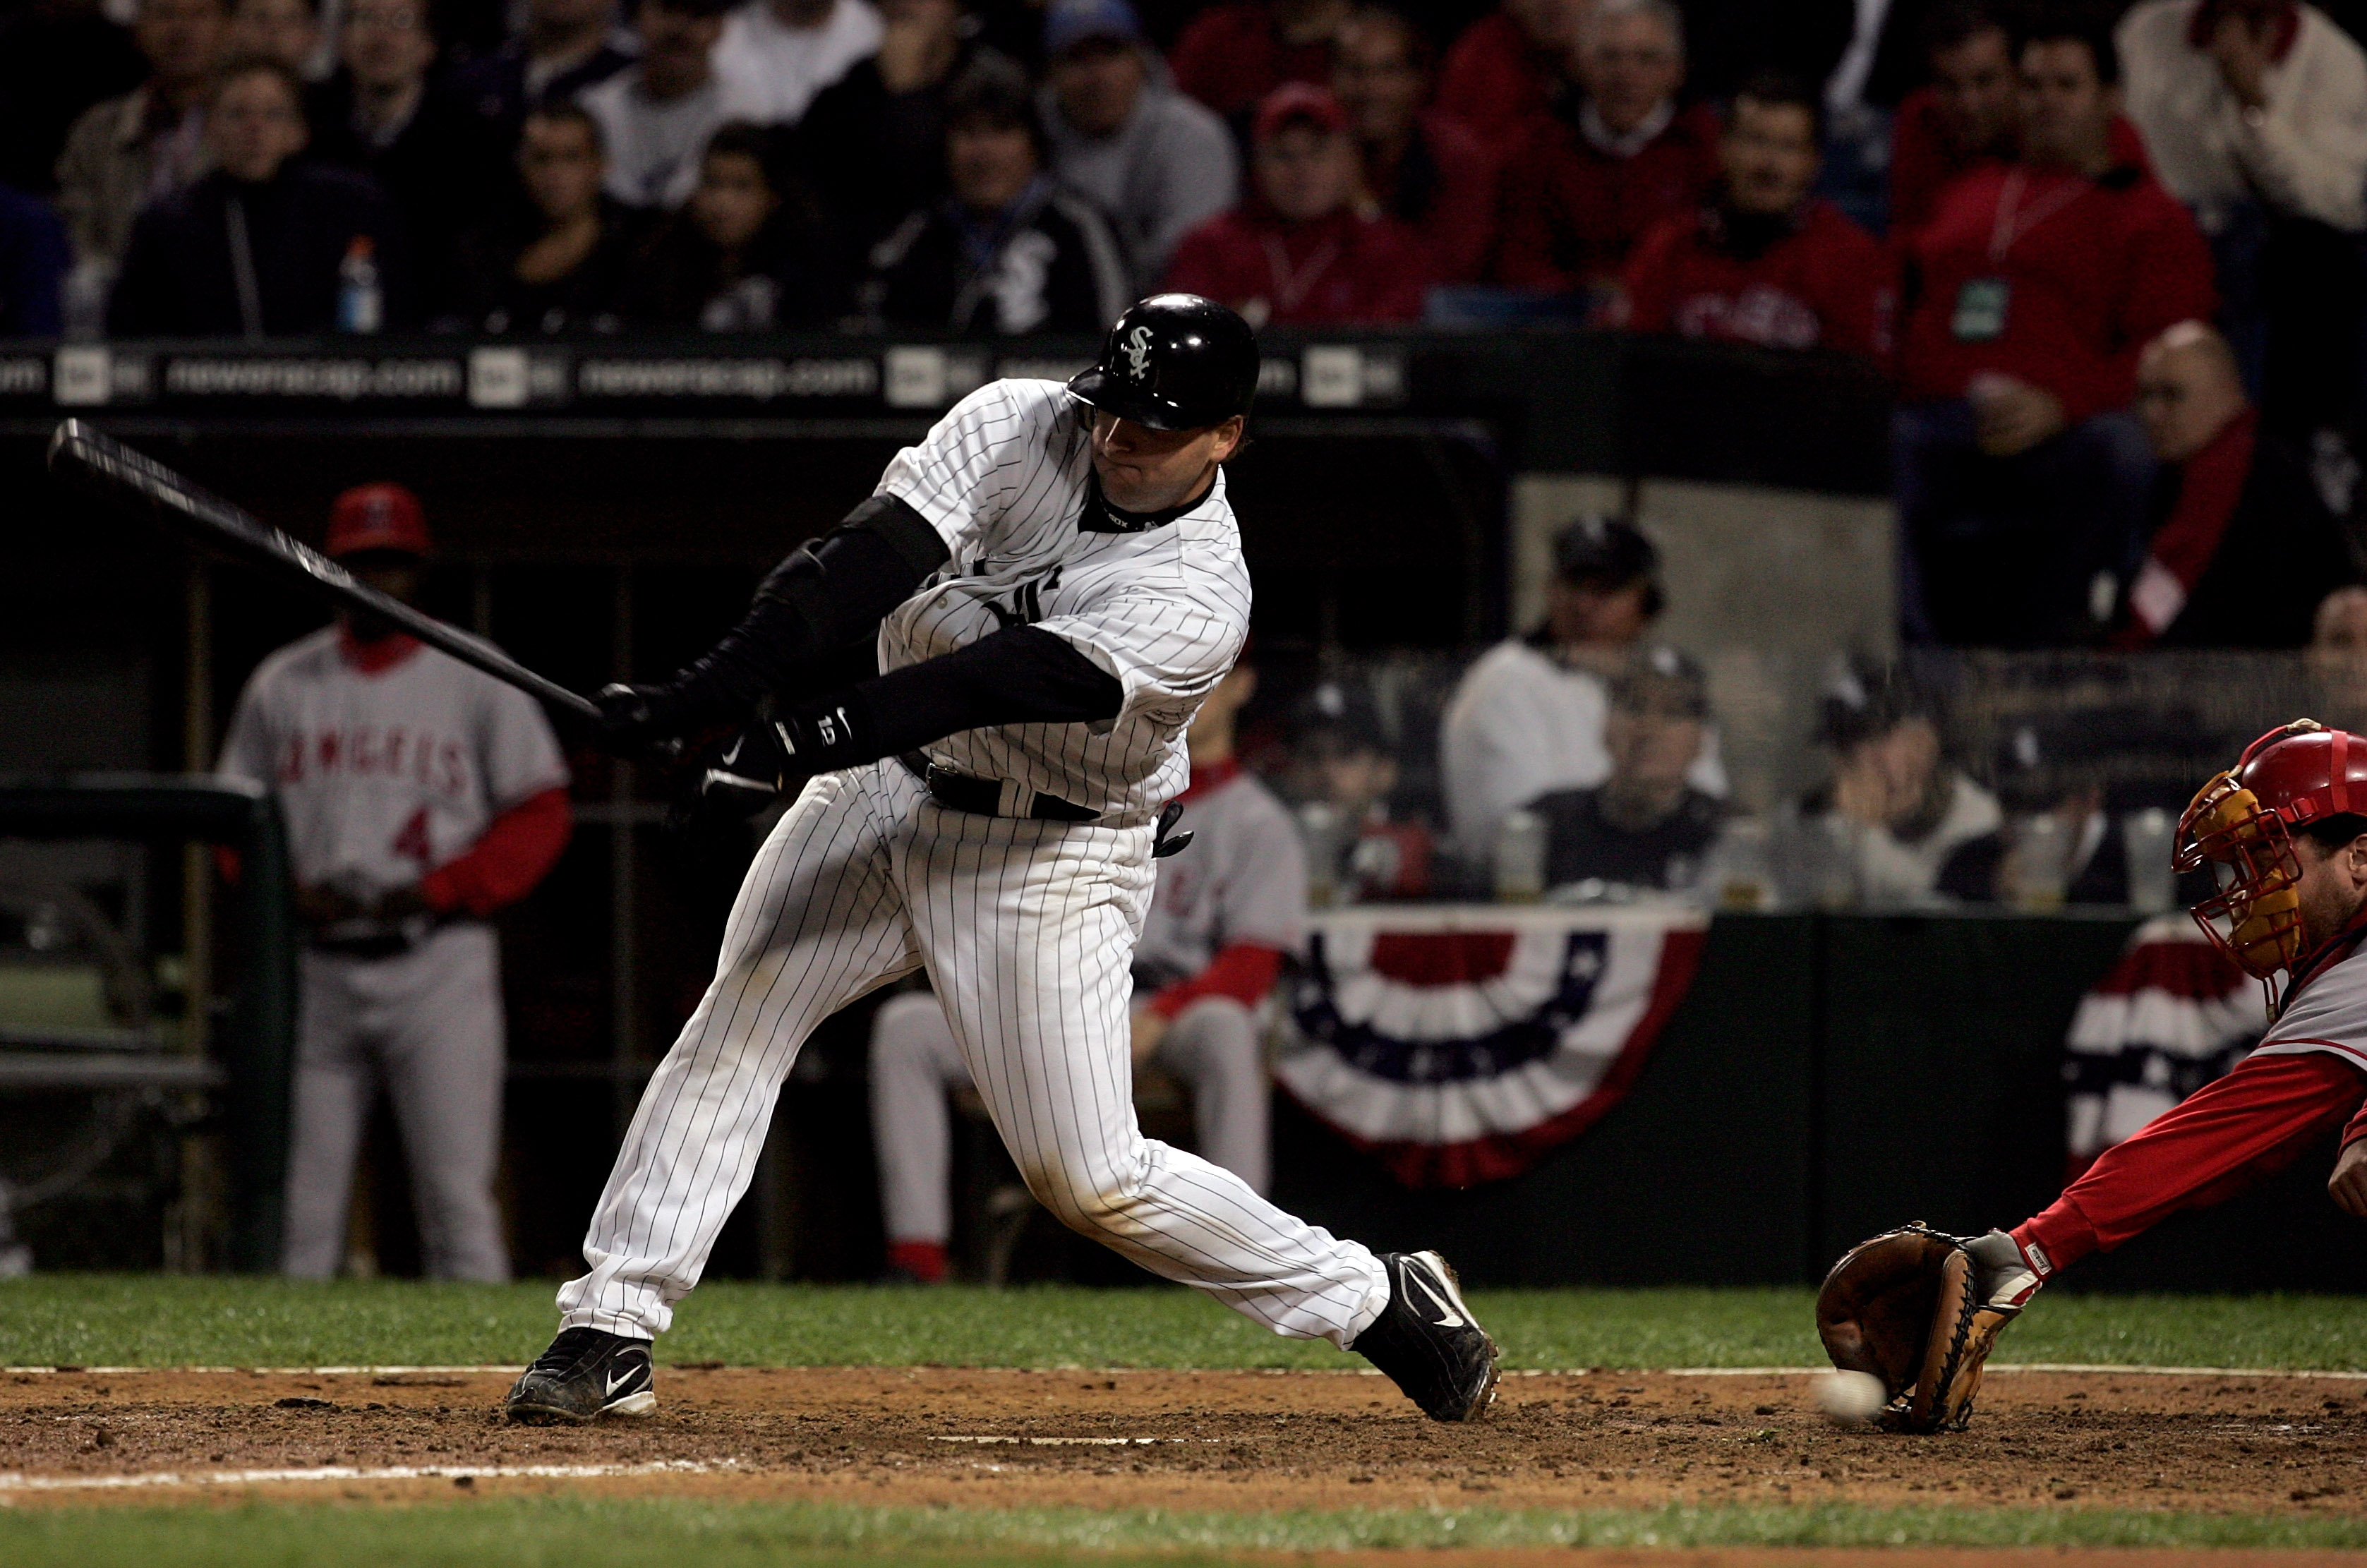 ALCS: Los Angeles Angels of Anaheim v Chicago White Sox - Game 2